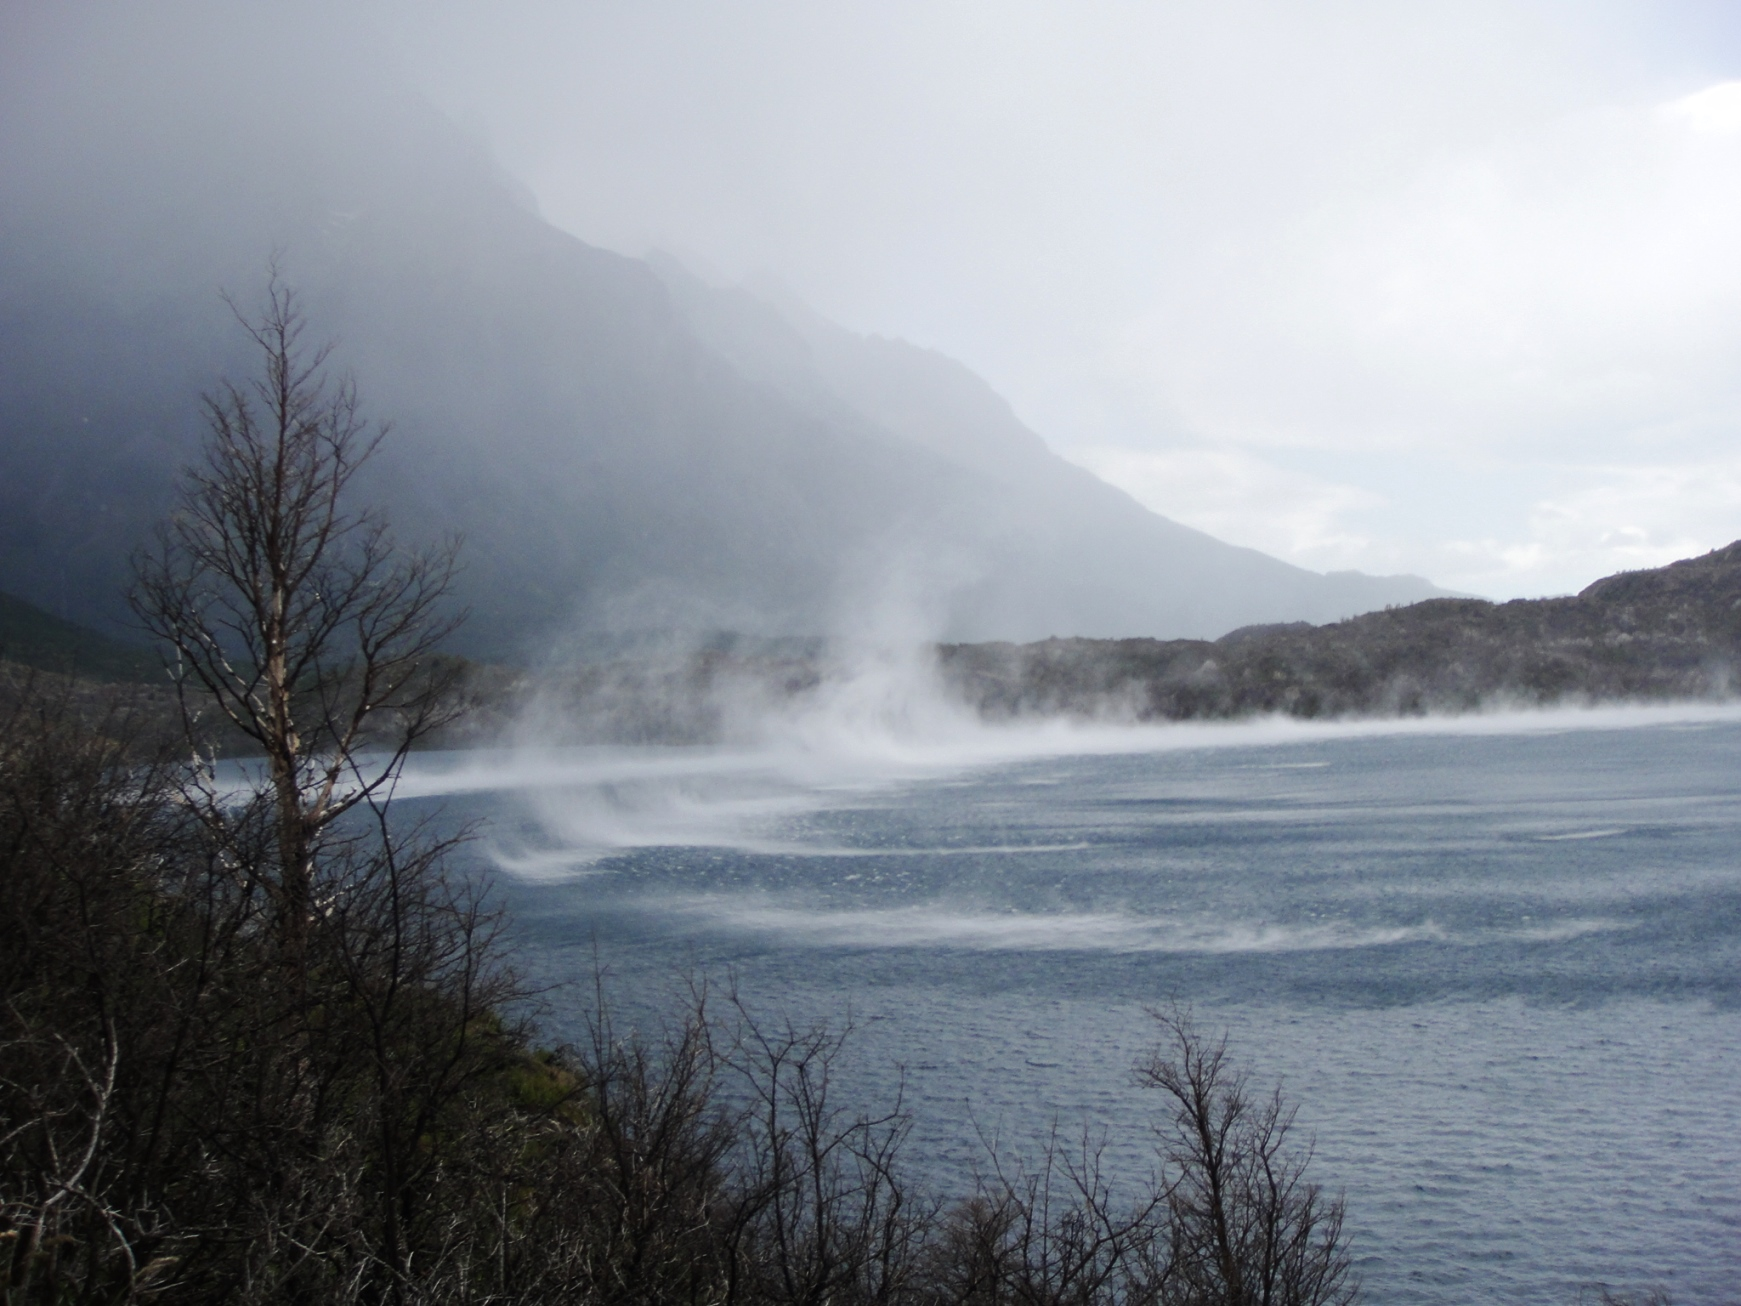 Day 3 in Torres Del Paine – Chilean Patagonia